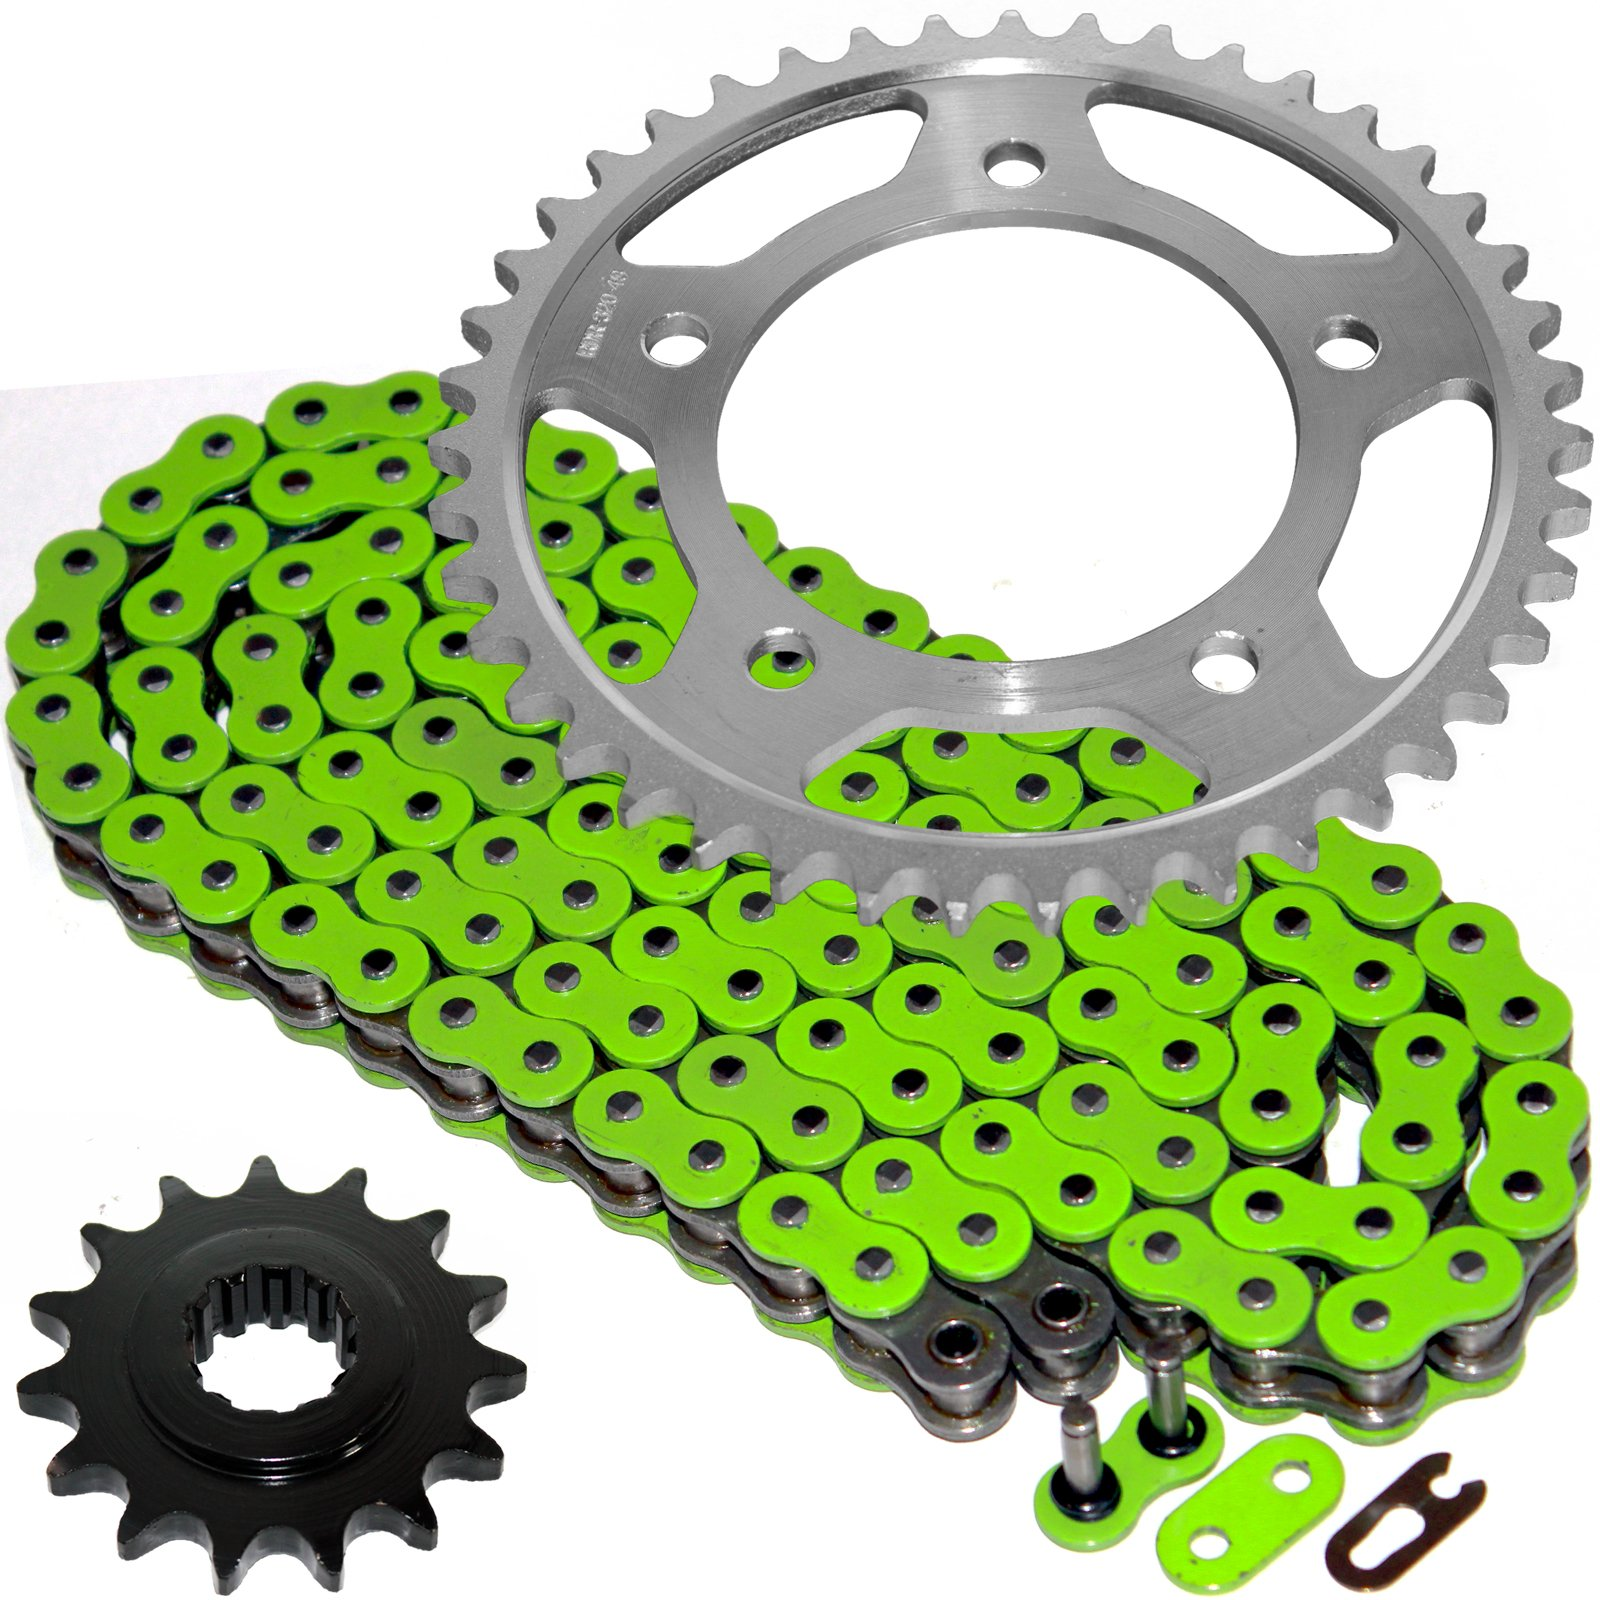 Caltric Green O-Ring Drive Chain & Sprockets Kit Fits HONDA CBR600F2 CBR-600F2 Super Sport 600F2 1991-1994